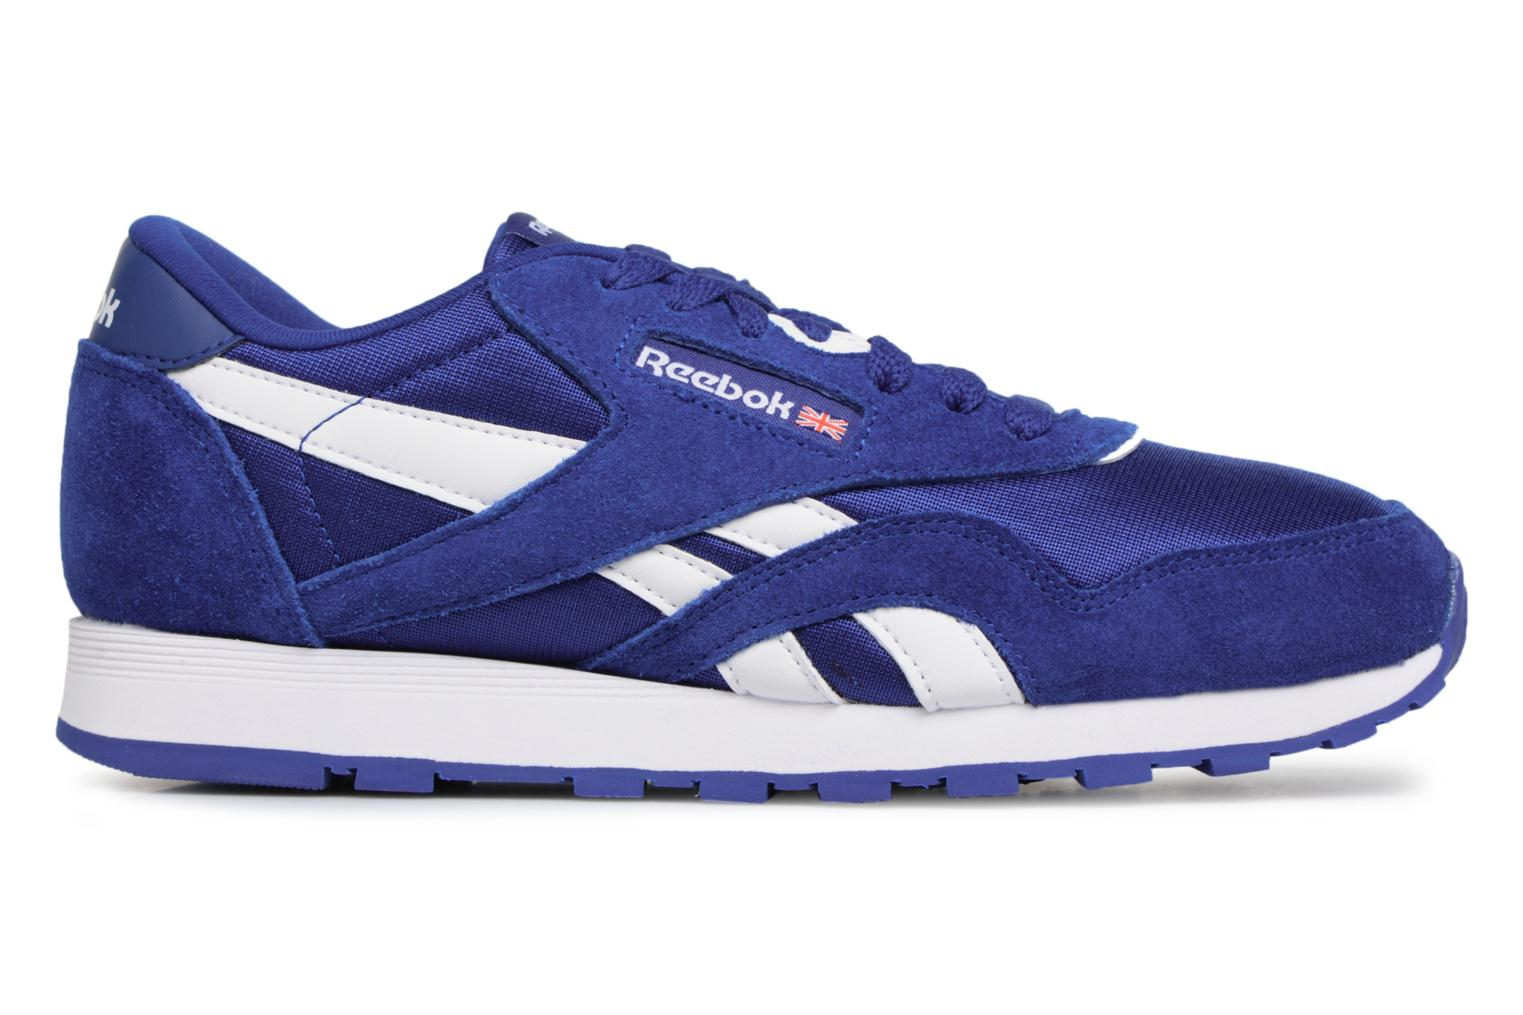 Collegiate Royal/White Reebok Cl Nylon J (Bleu)